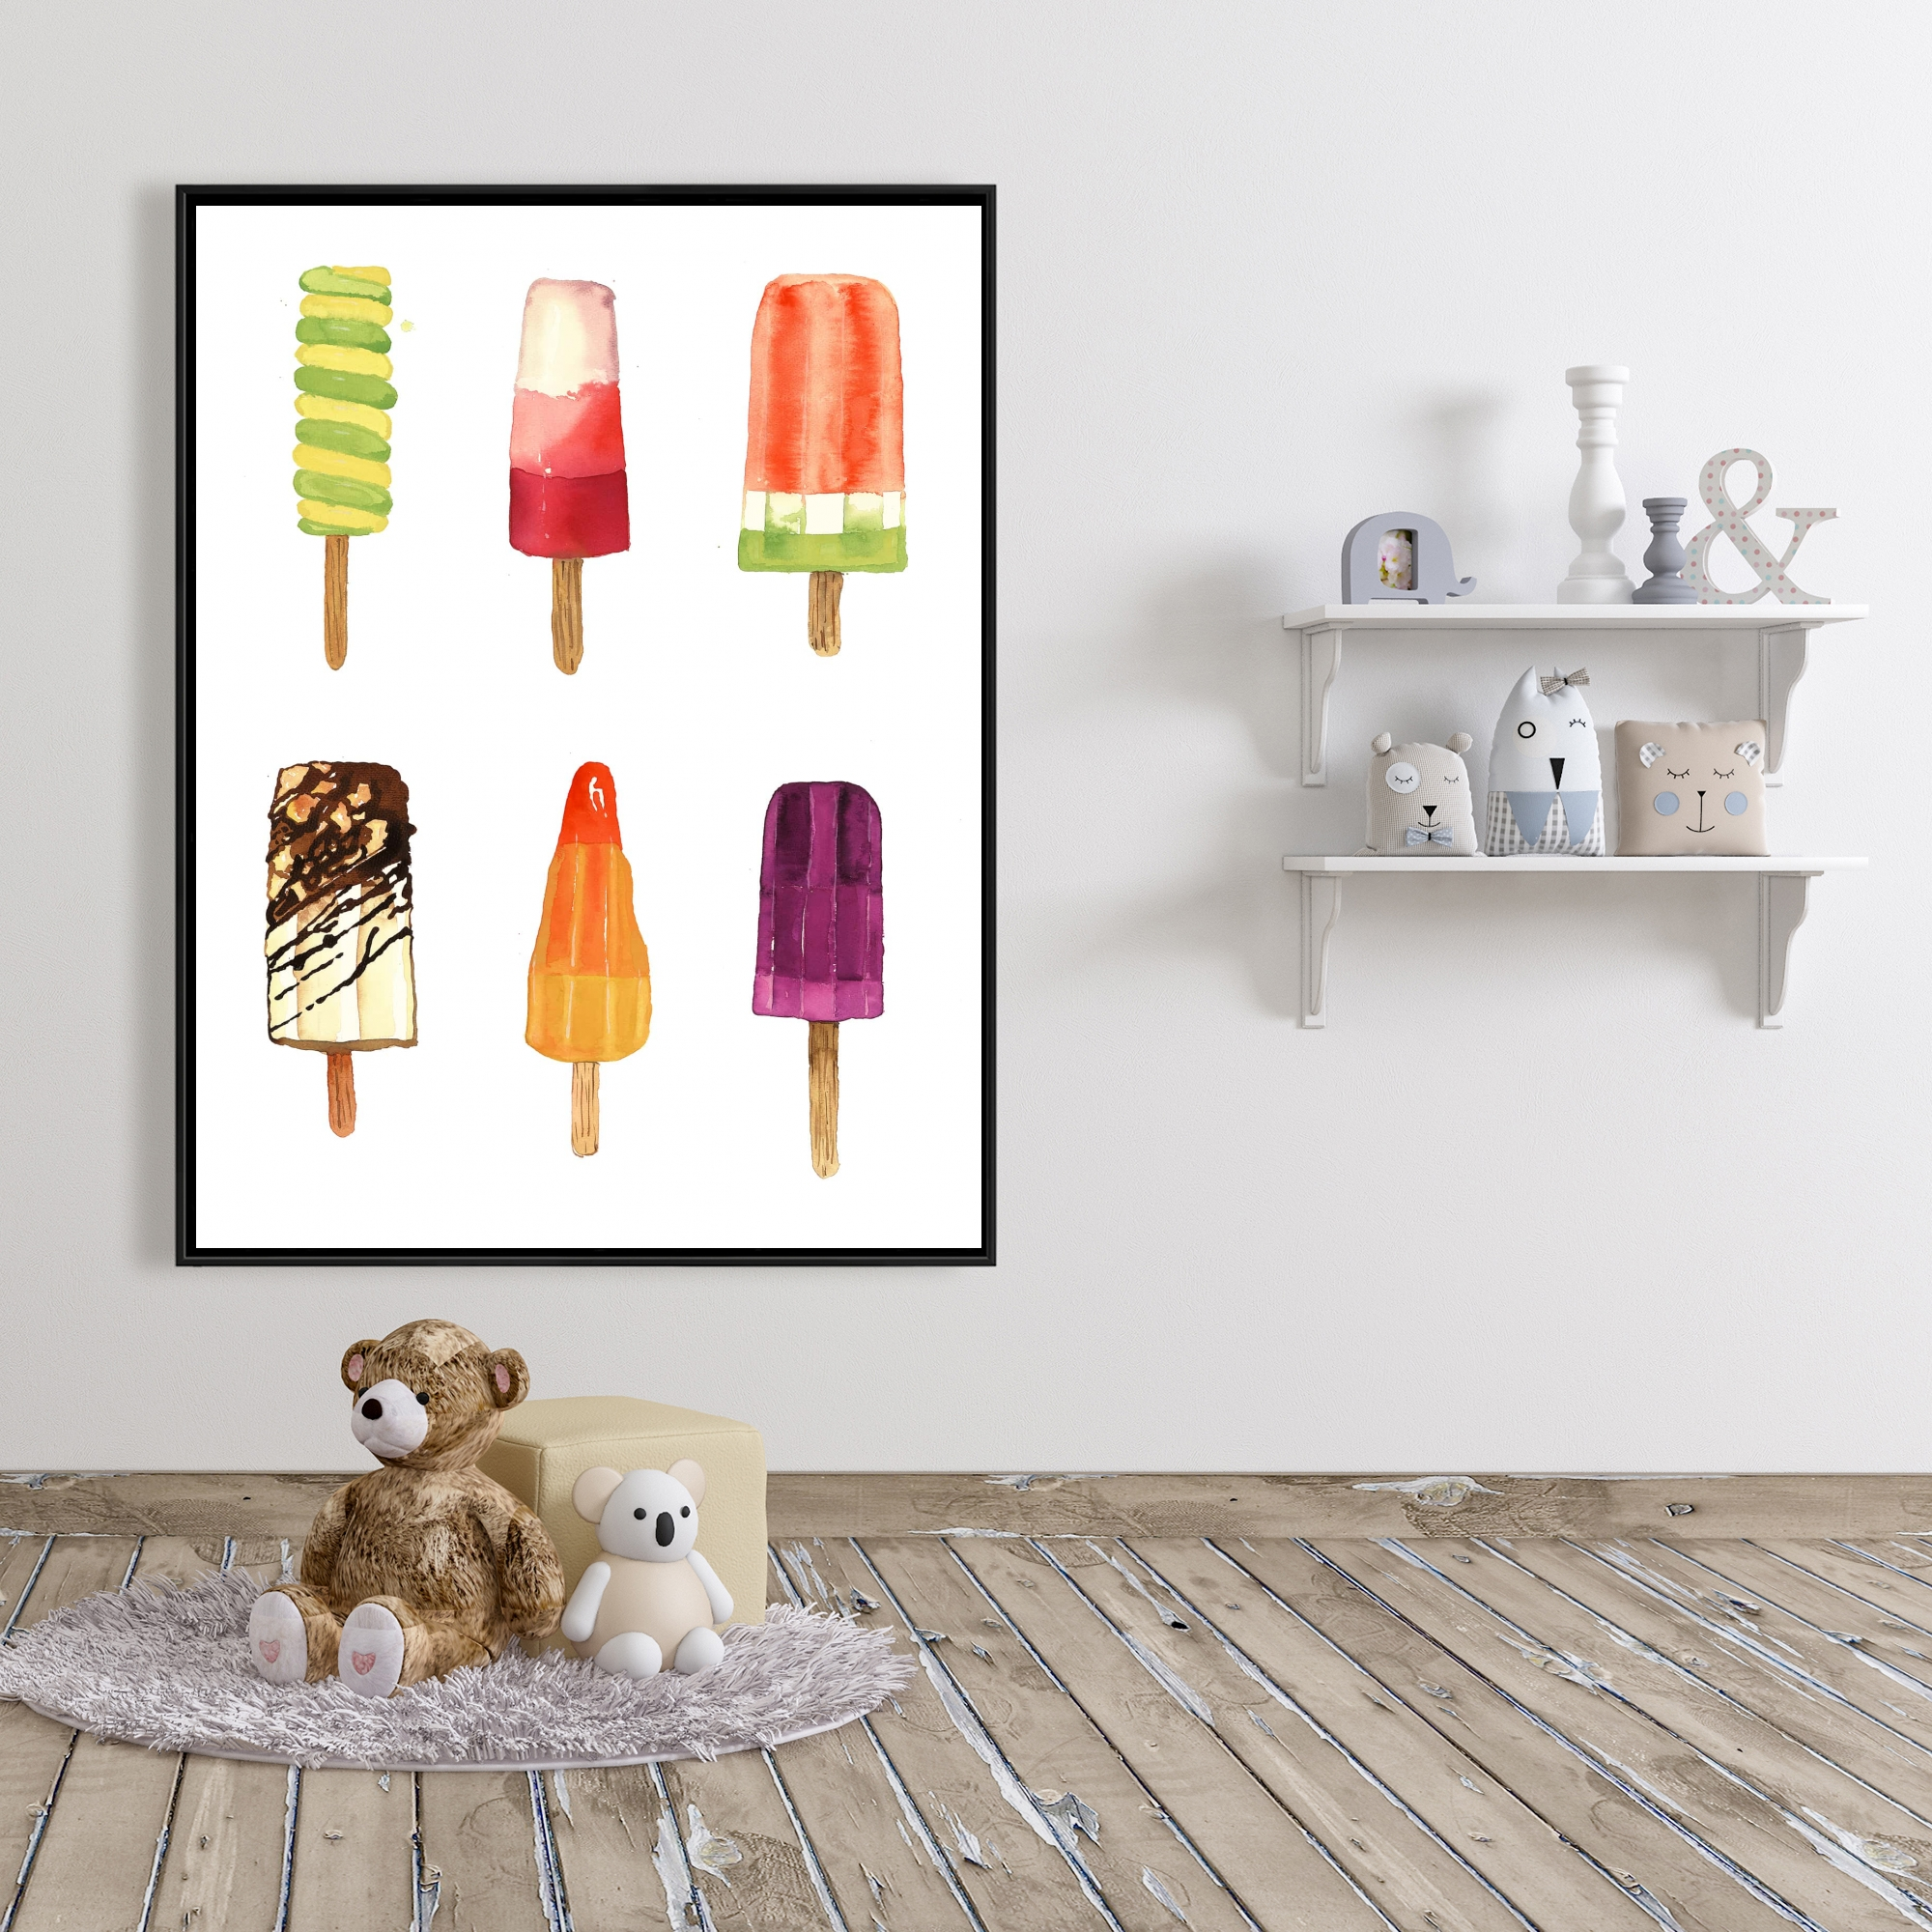 Framed 36 x 48 - Iced lollipop